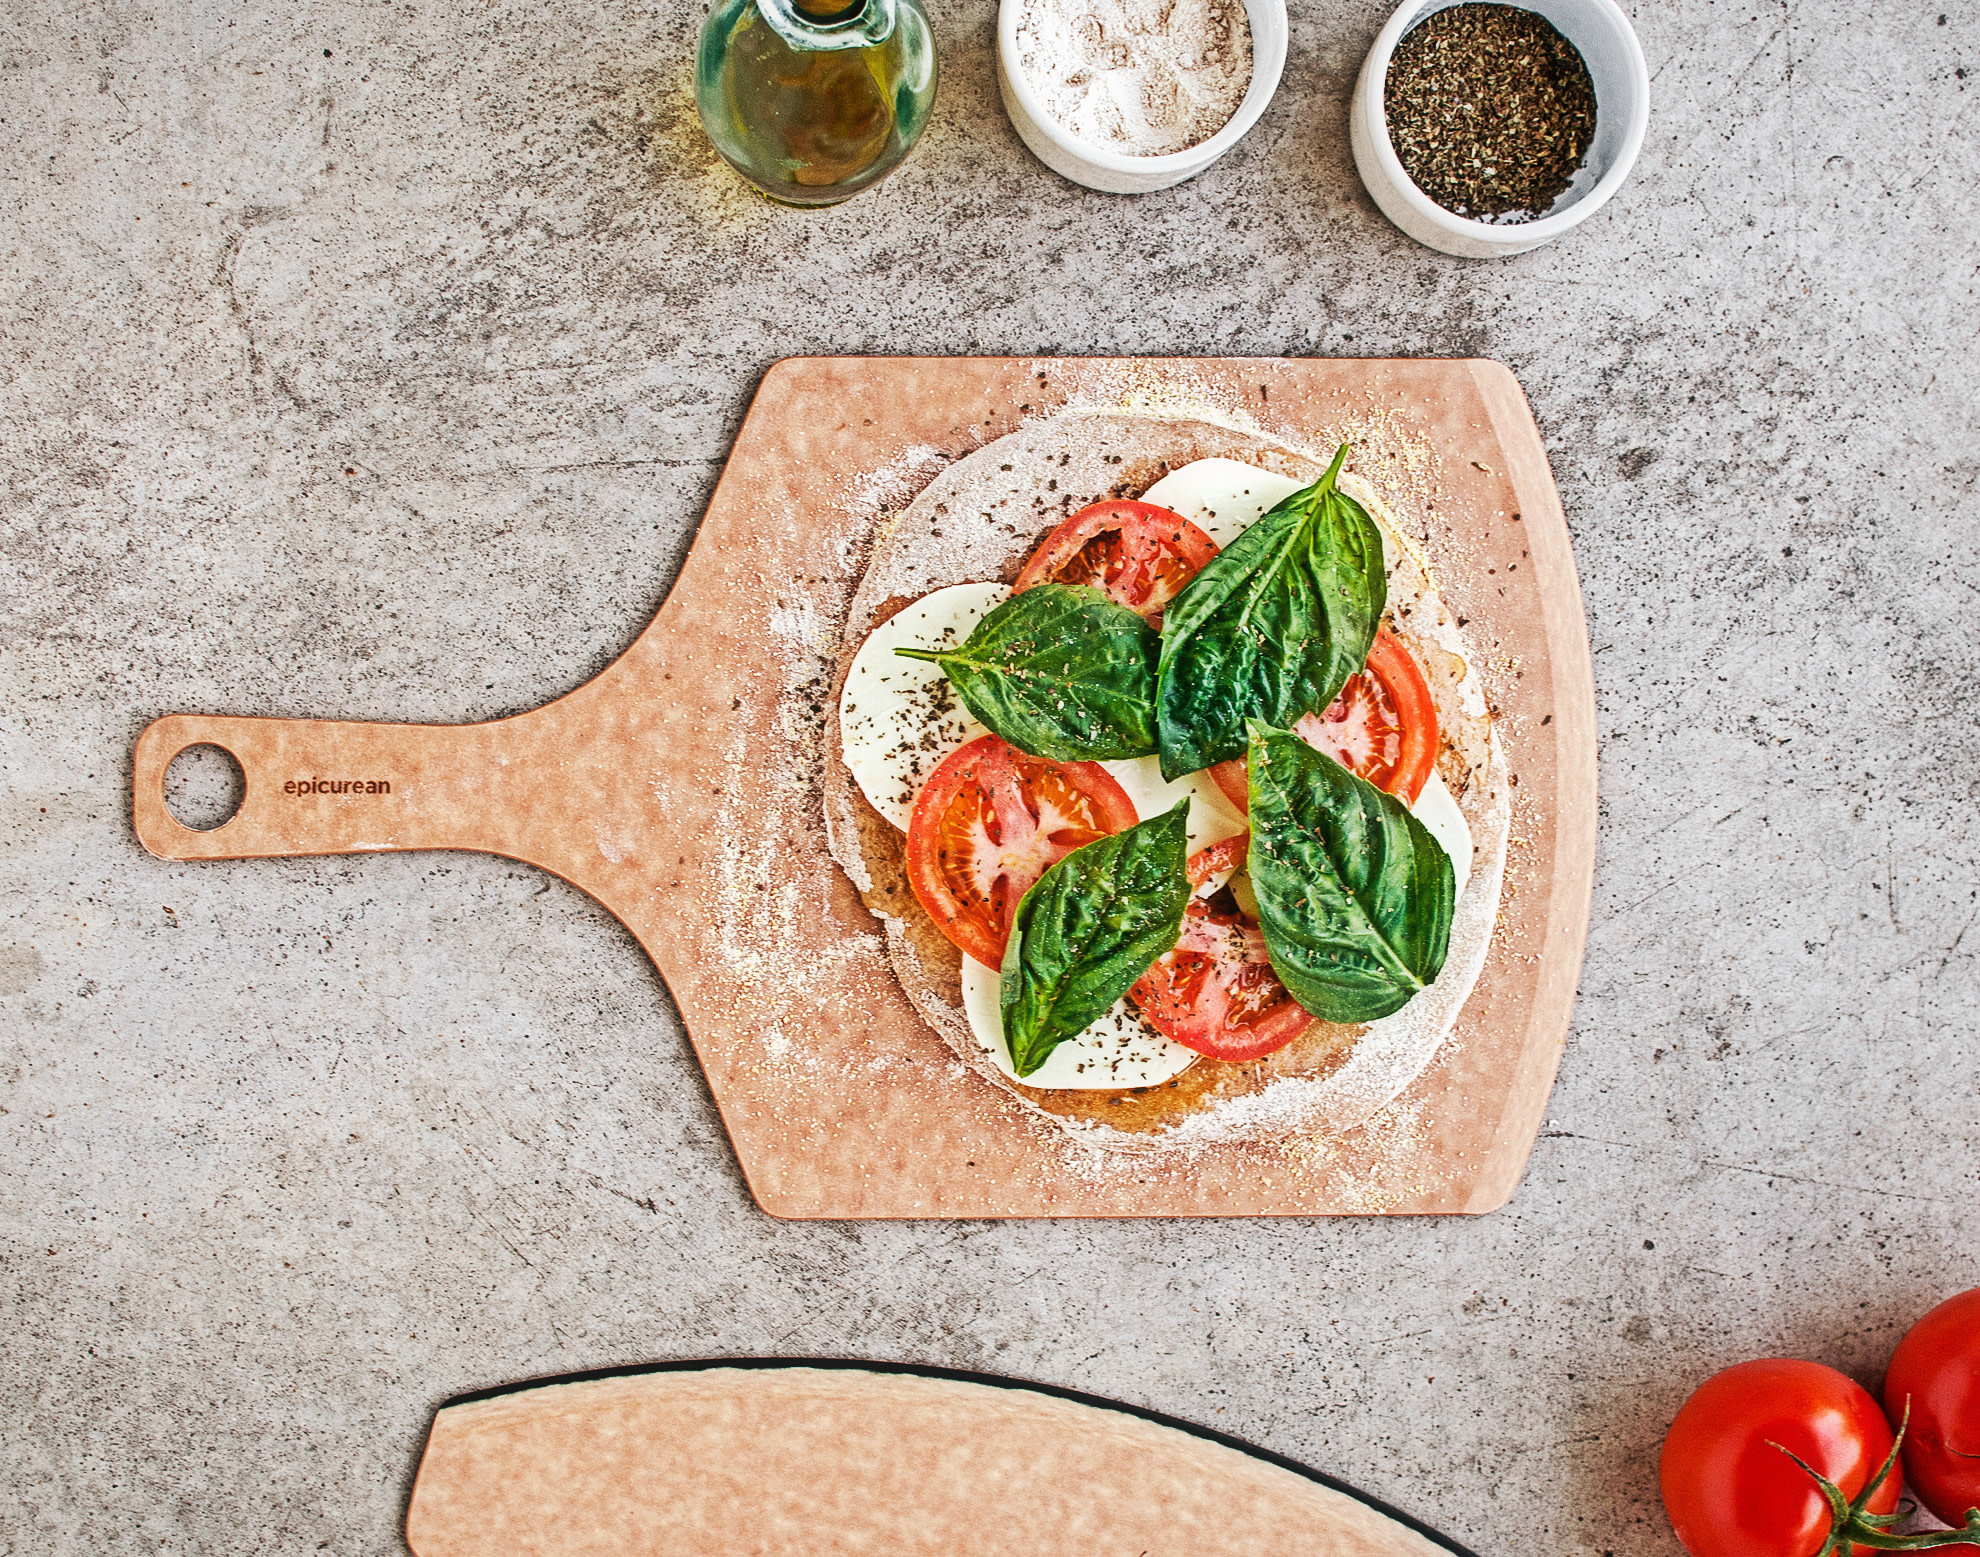 Epicurean Pizza Peel Small